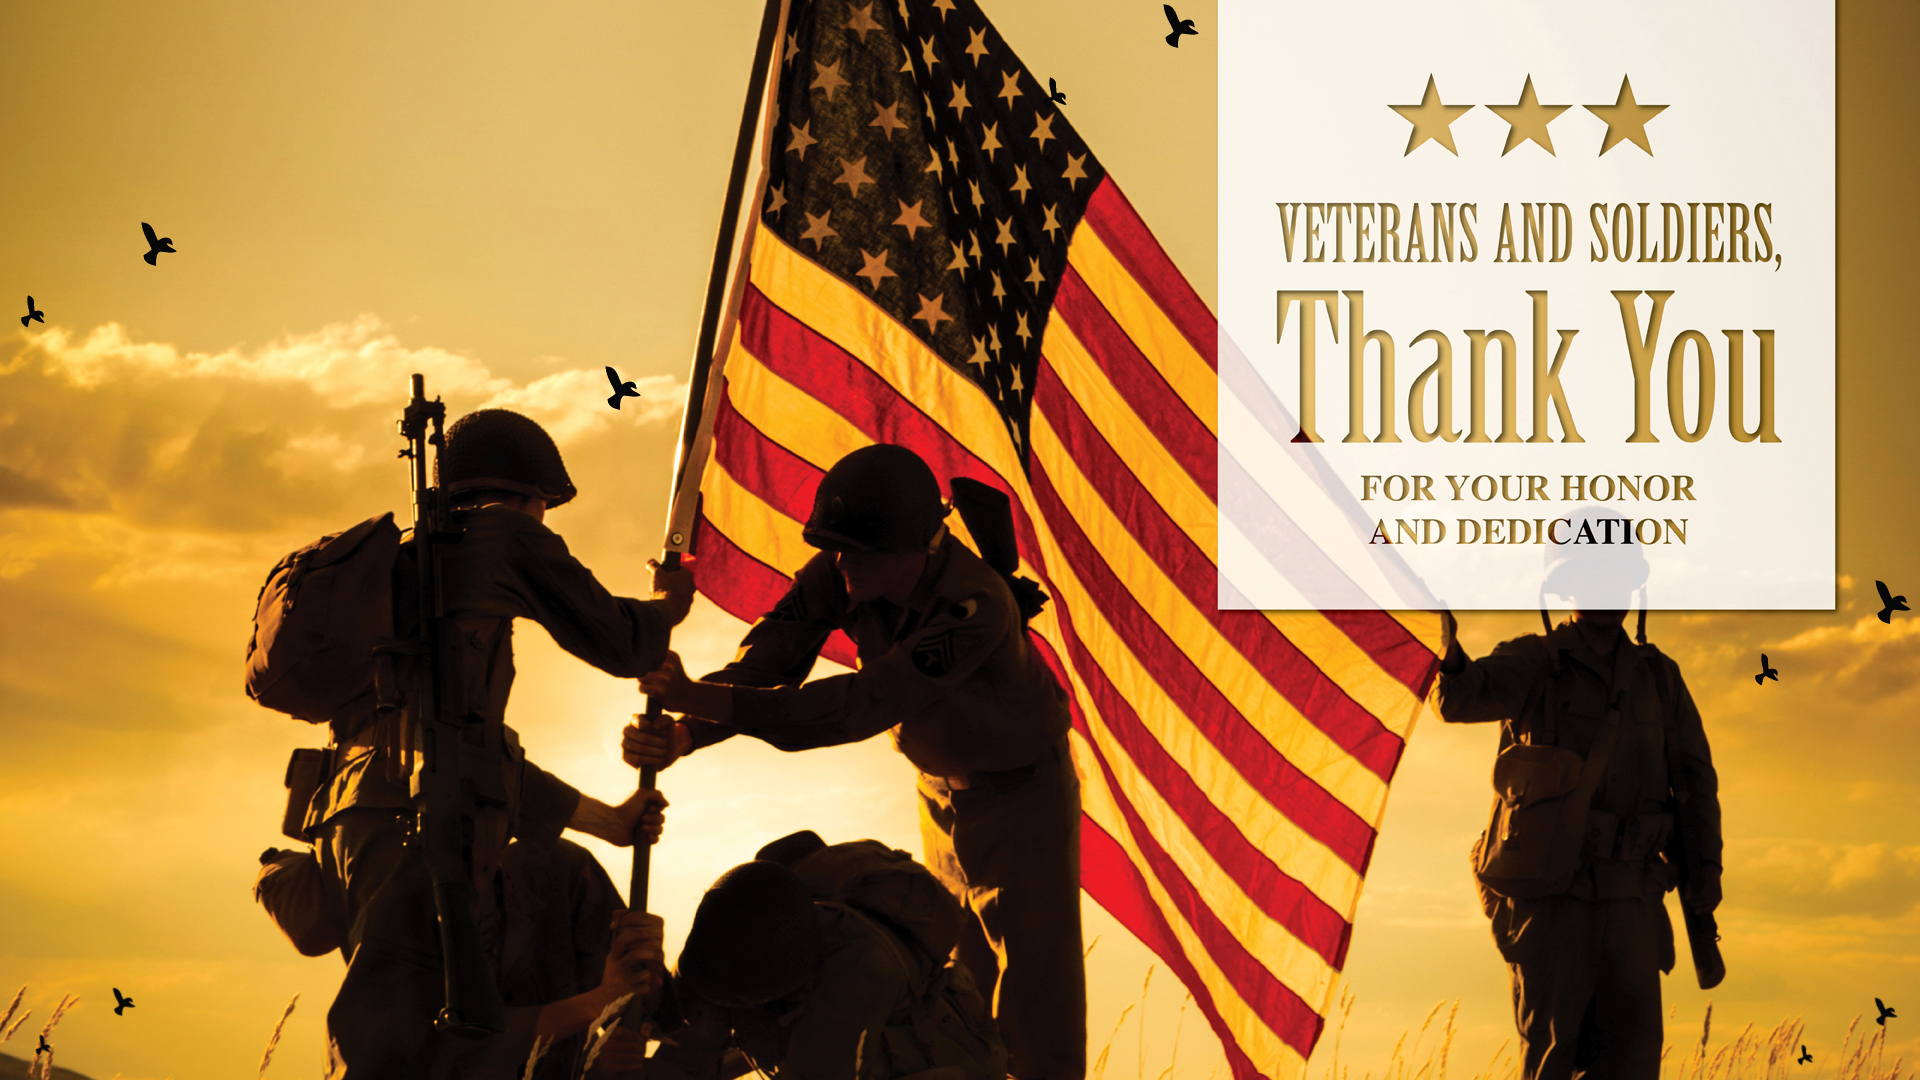 veterans-day-thankyou-hd-wallpapers-images-quotes-posters